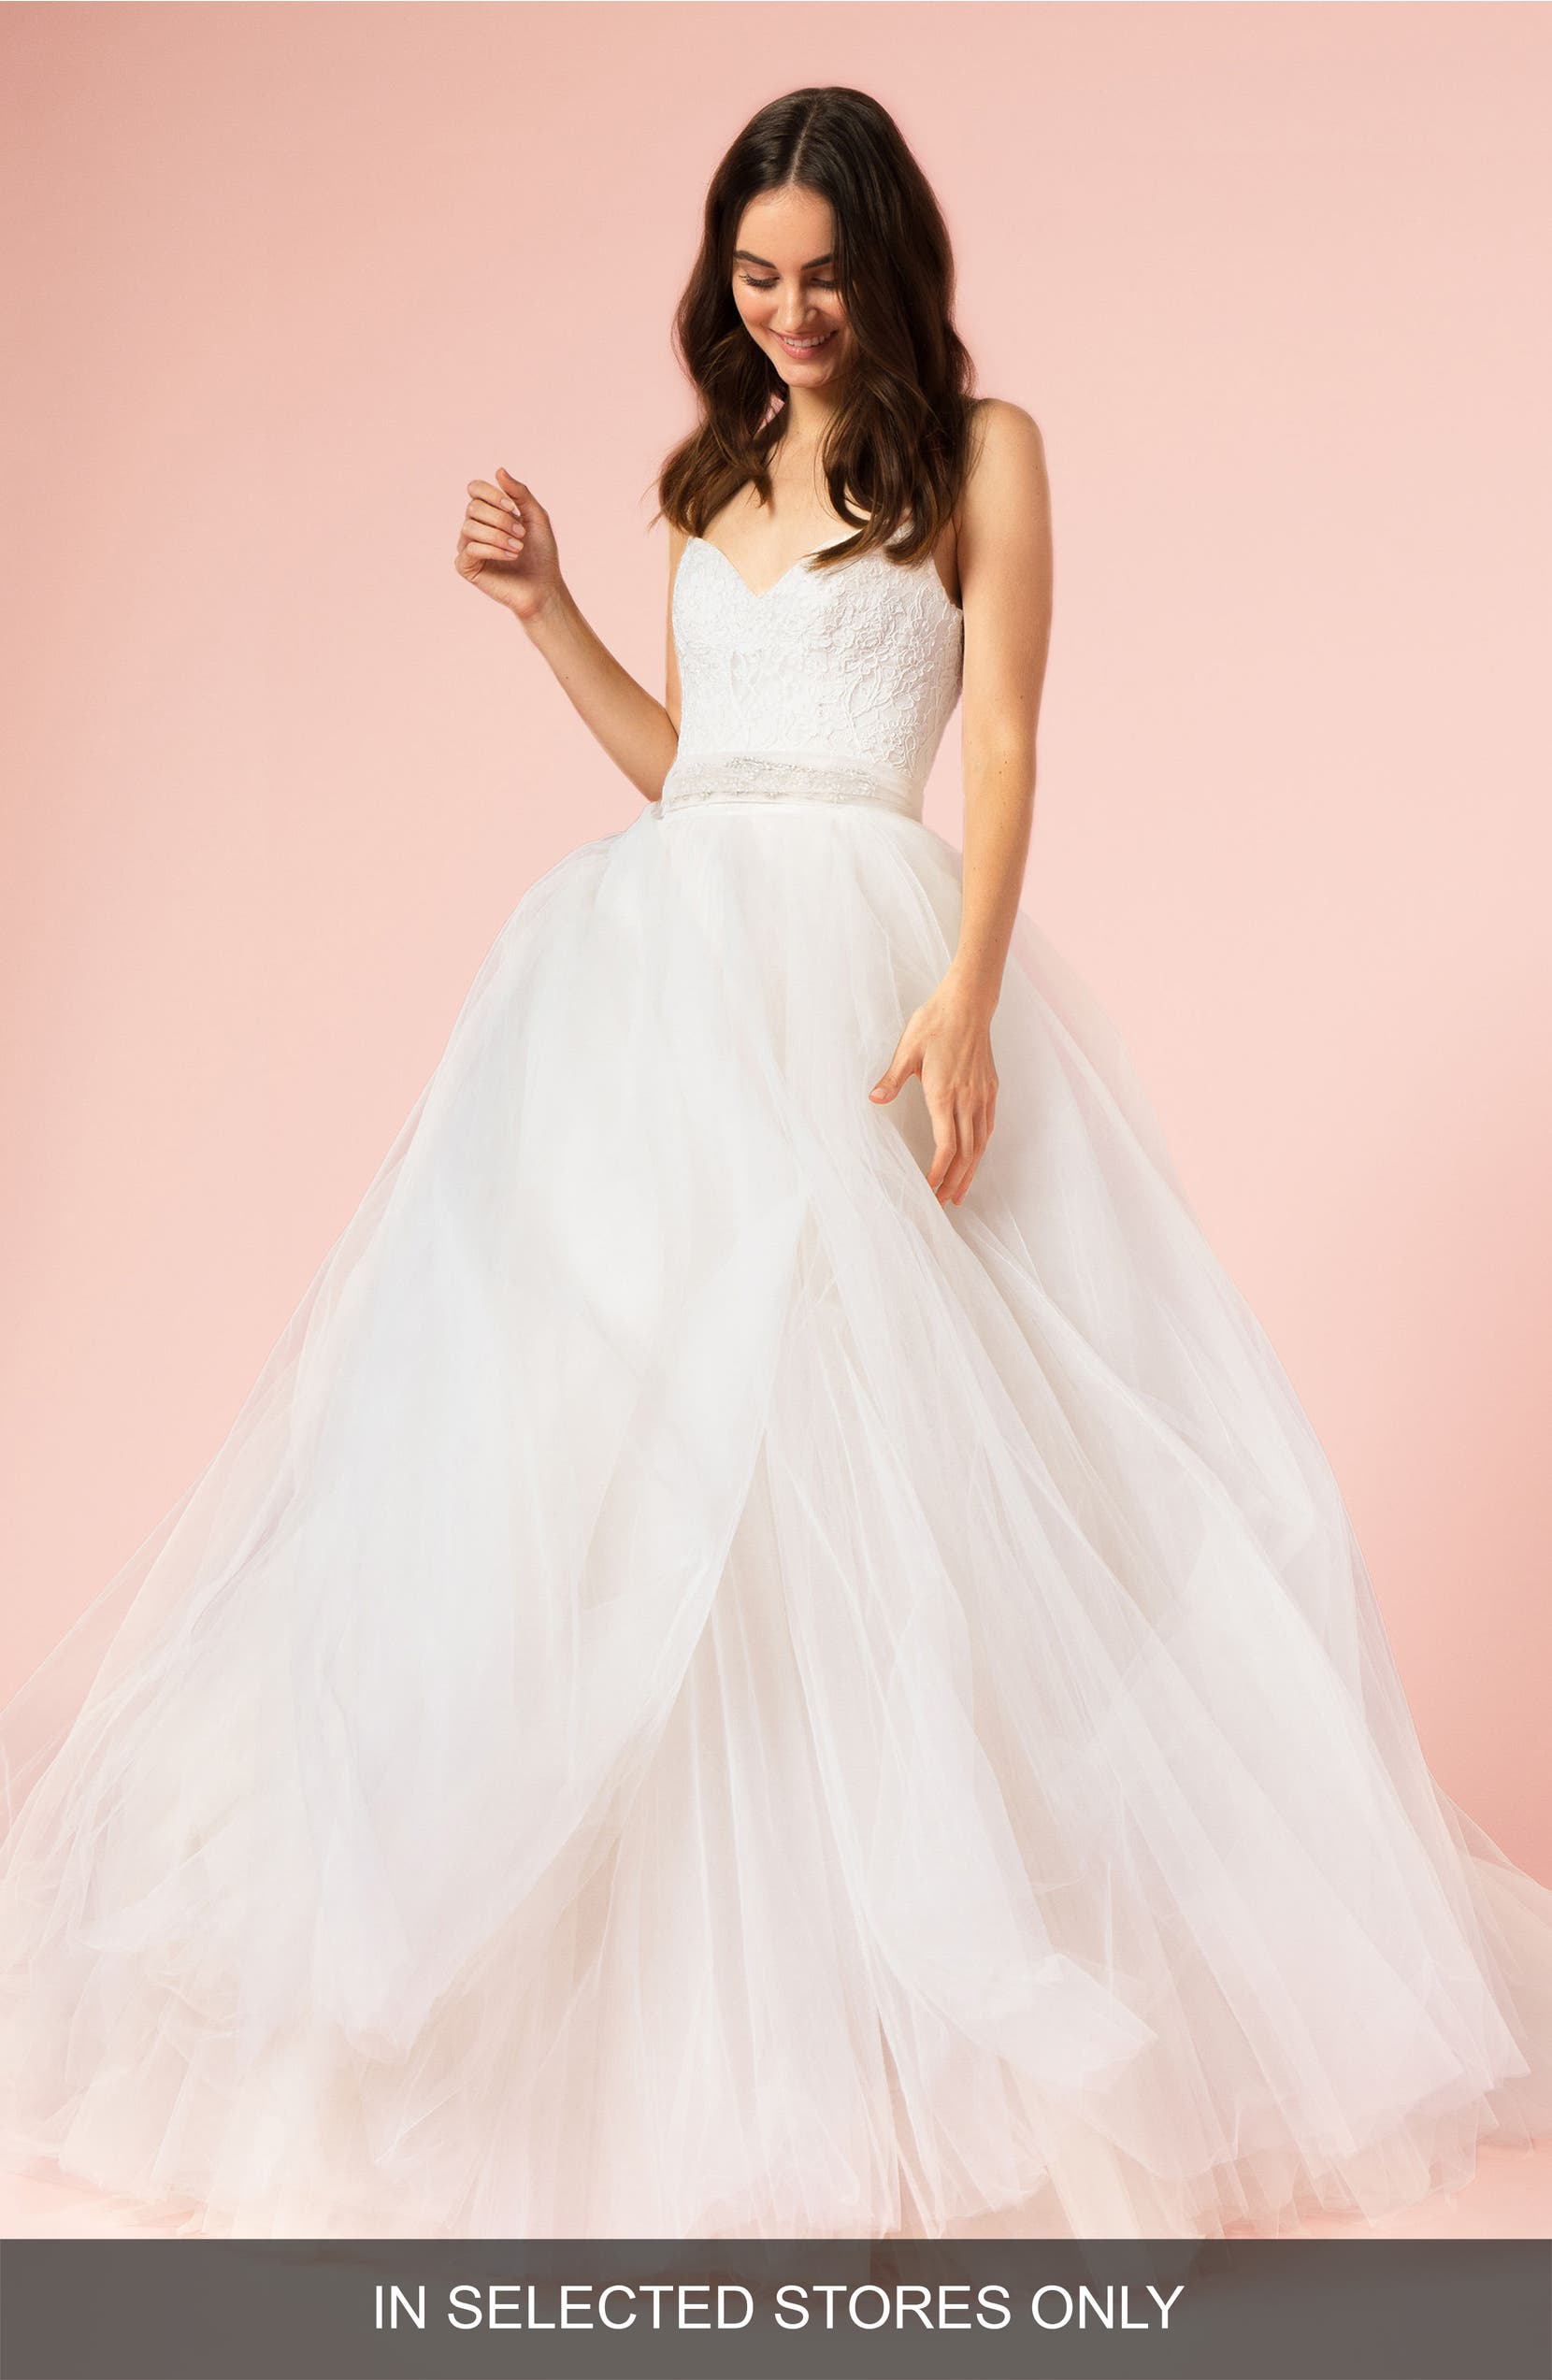 074856d82a20c BLISS Monique Lhuillier Spaghetti Strap Lace & Tulle Ball Gown   Nordstrom